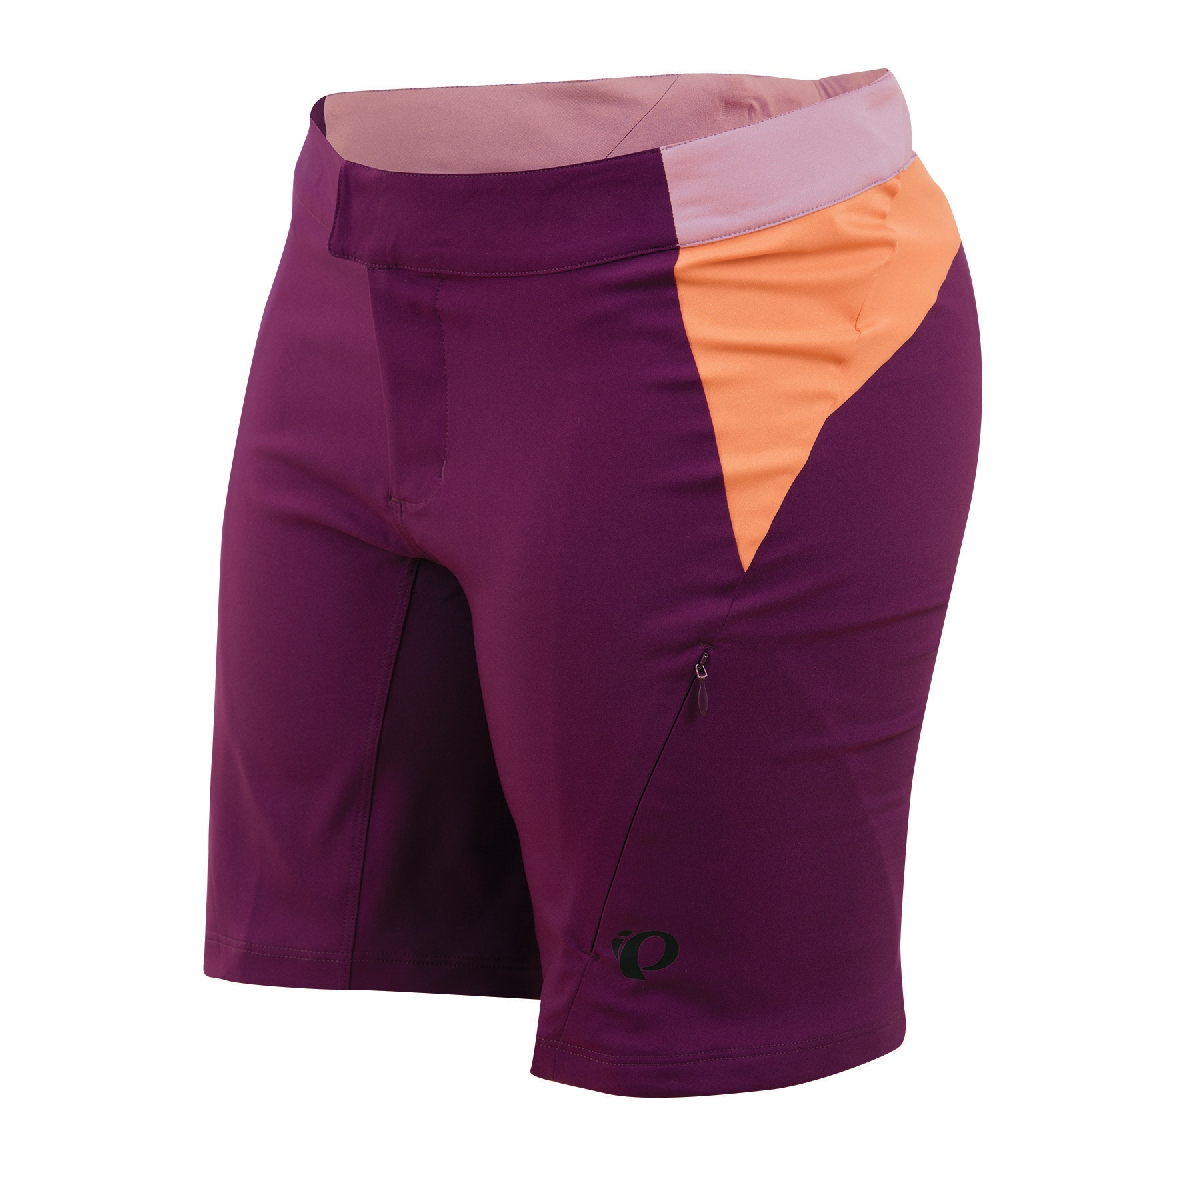 Pearl Izumi Canyon Cycling Short Women's Size M DarkPurple U.S.A. & Canada